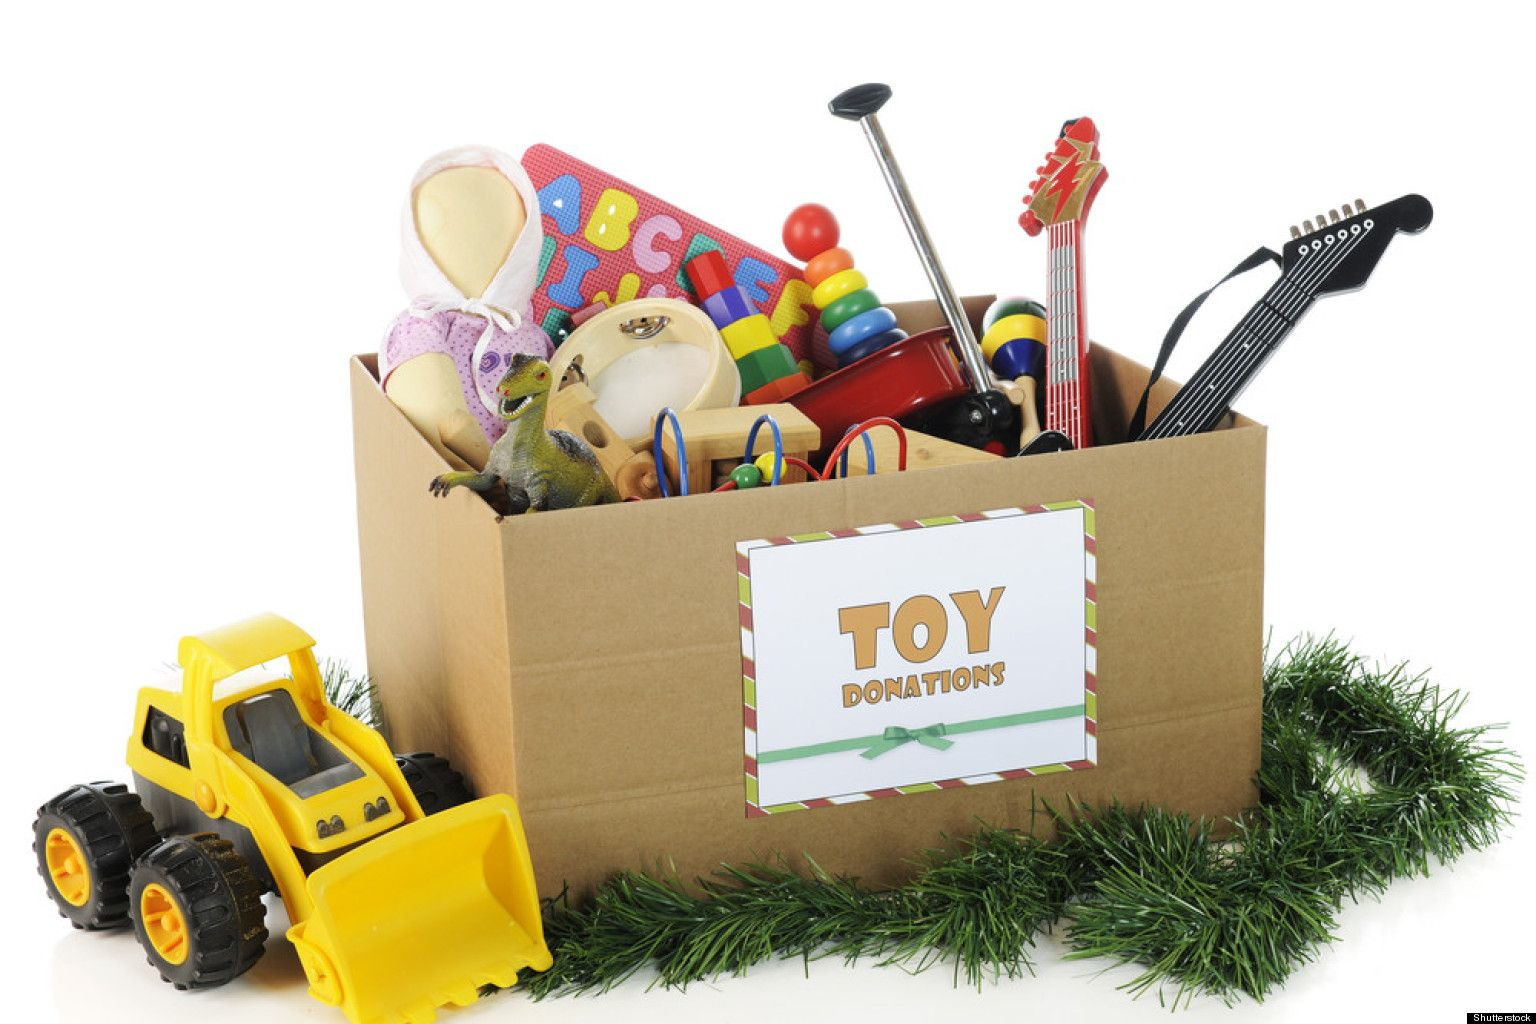 After Hostibg a Toy Swop Party, Take the Leftover Toys to a